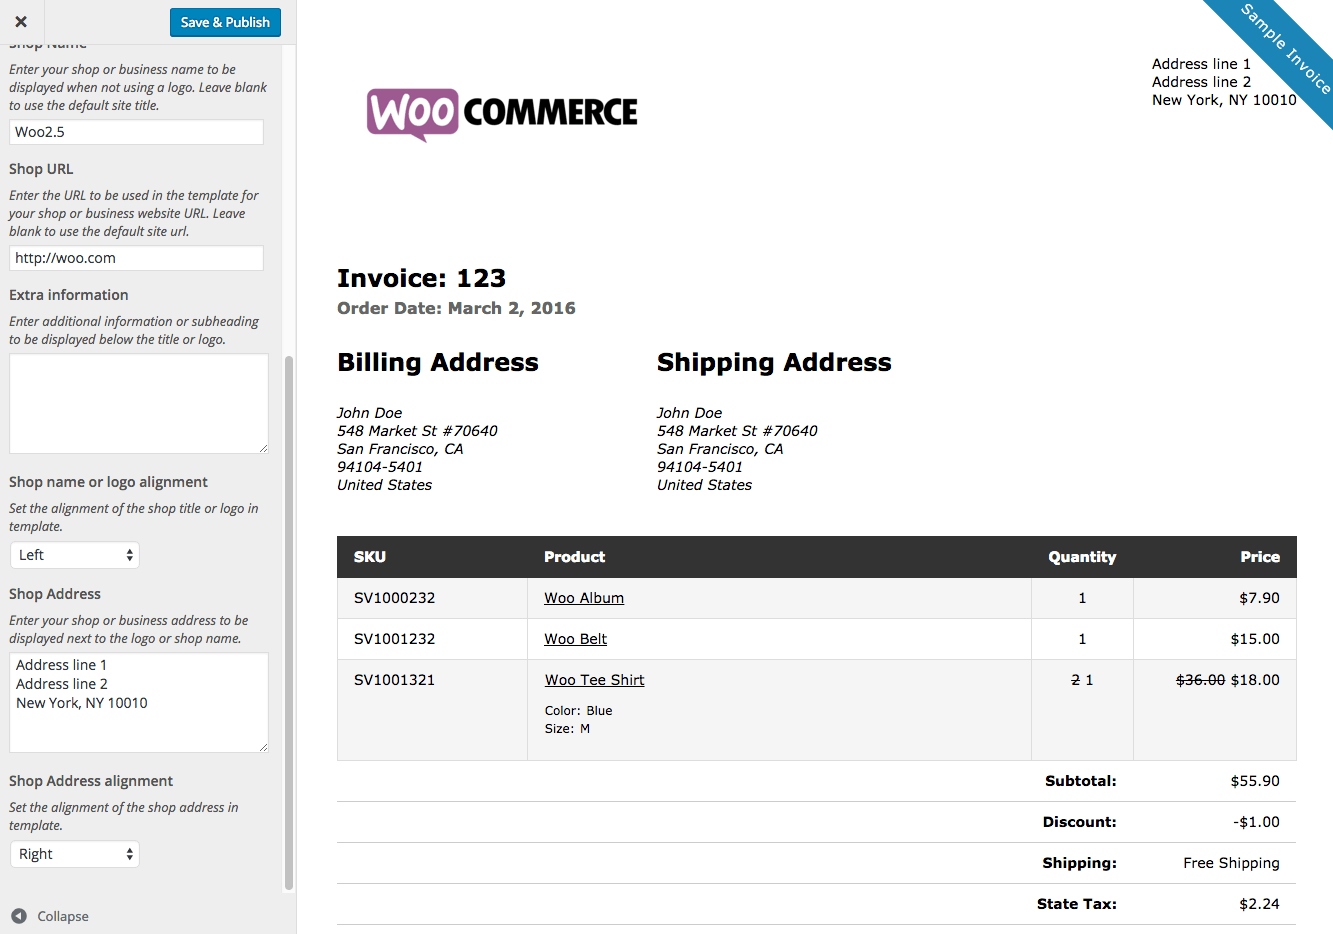 Patriotexpressus  Nice Woocommerce Print Invoices Amp Packing Lists  Woocommerce Docs With Likable Woocommerce Print Invoices  Packing Lists Customizer With Amazing Hitachi Invoice Finance Also Tax Invoice Excel Format In Addition Format For Invoice Bill And Copy Of Invoice Form As Well As Us Customs Commercial Invoice Additionally Make Your Own Invoice Online Free From Docswoocommercecom With Patriotexpressus  Likable Woocommerce Print Invoices Amp Packing Lists  Woocommerce Docs With Amazing Woocommerce Print Invoices  Packing Lists Customizer And Nice Hitachi Invoice Finance Also Tax Invoice Excel Format In Addition Format For Invoice Bill From Docswoocommercecom